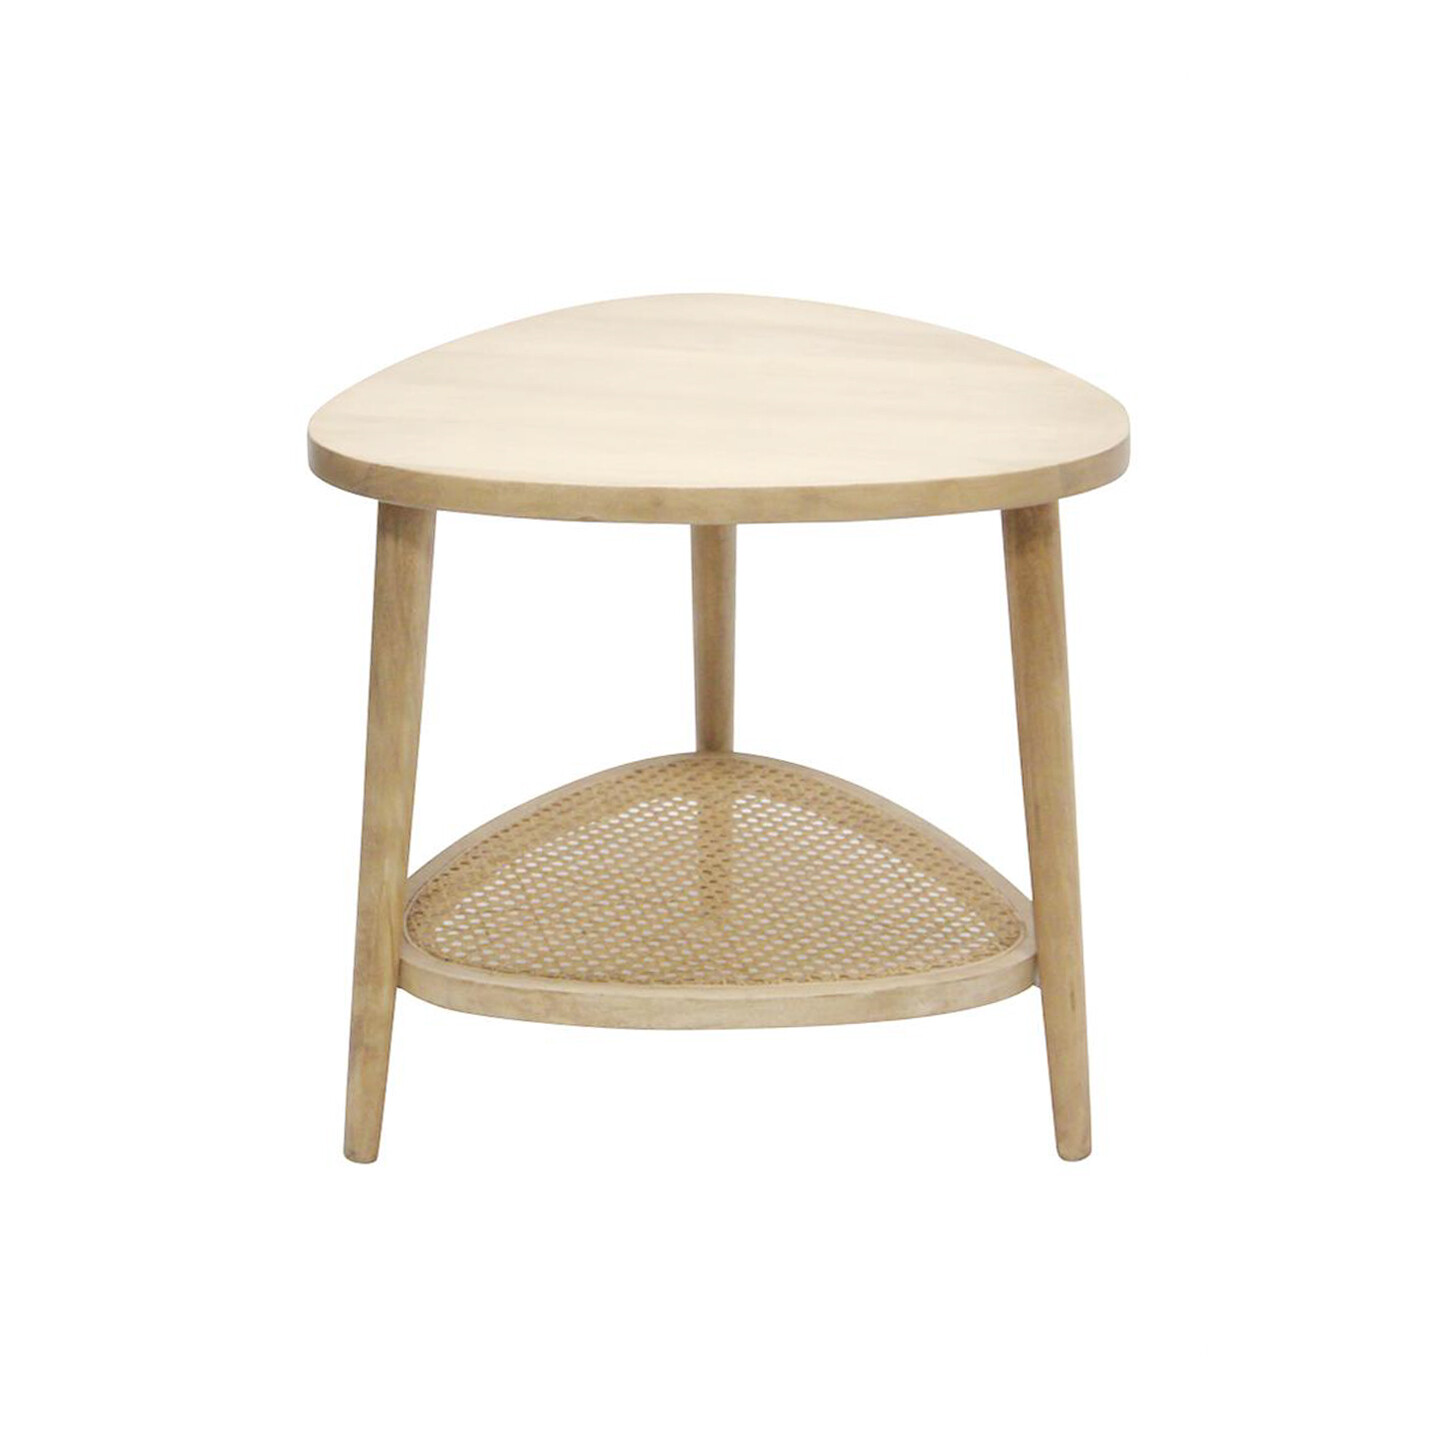 Mangowood Sidetable with Rattan